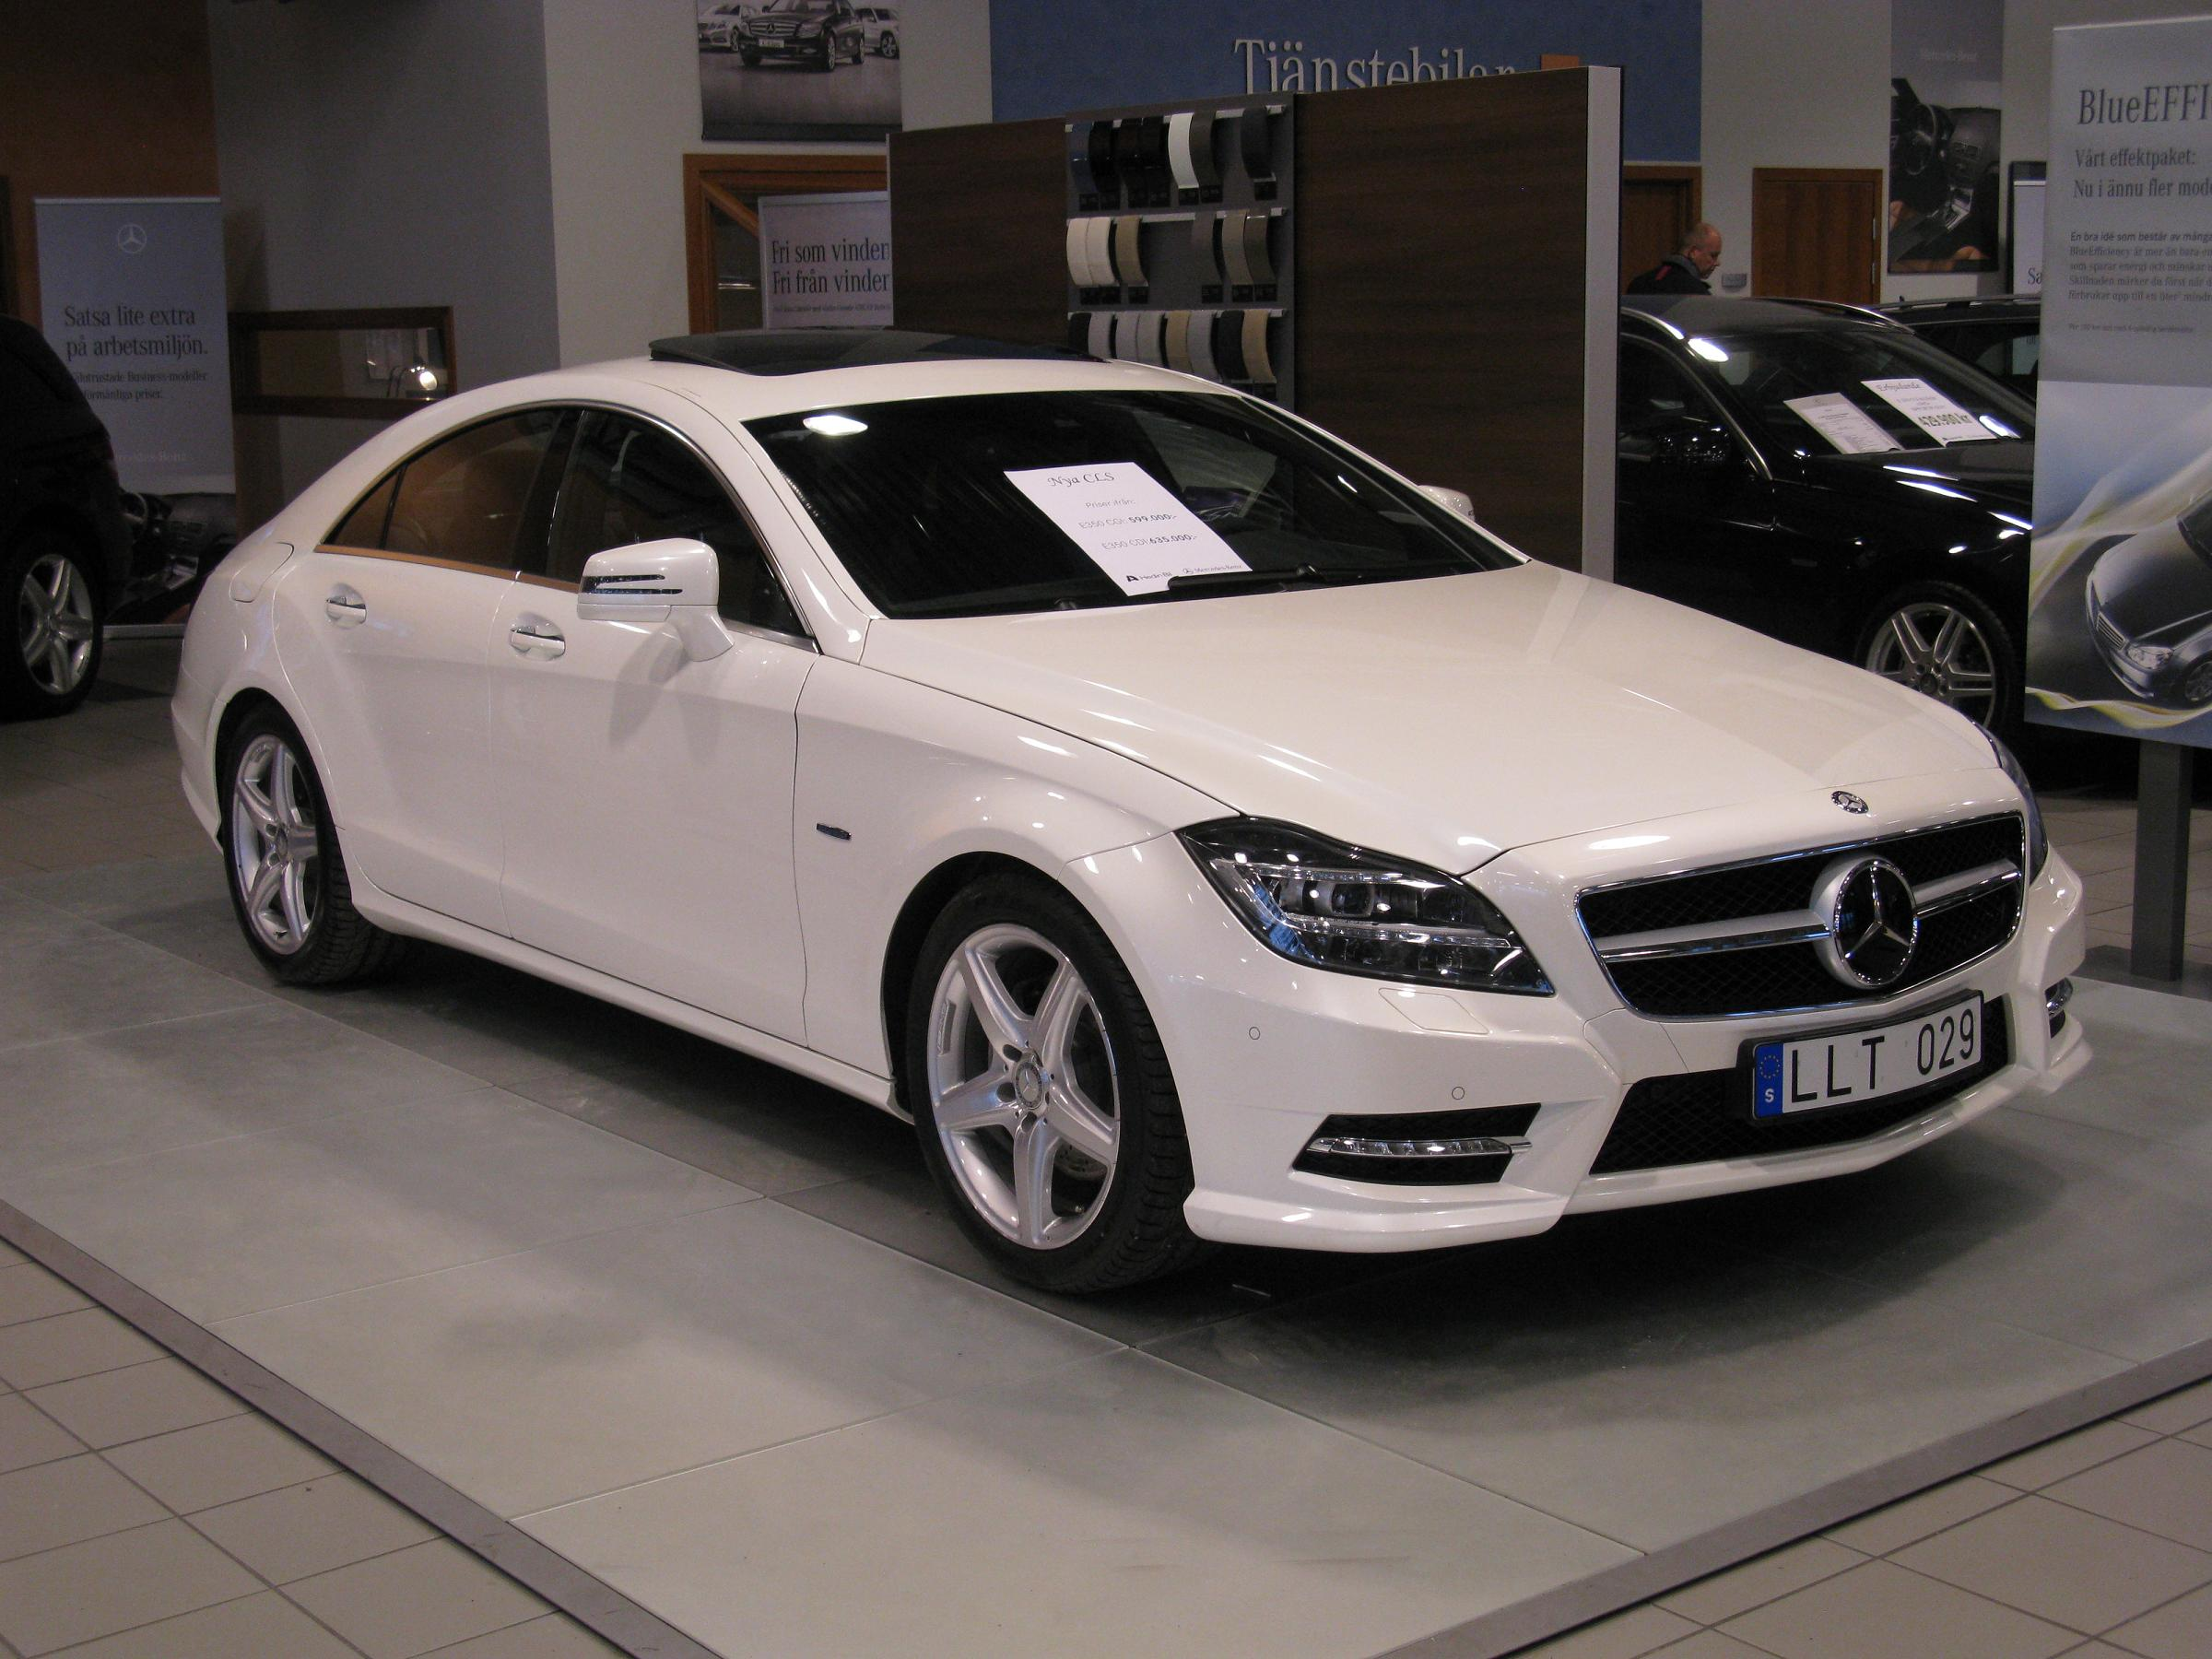 Betere File:Mercedes-Benz CLS 350 CDi (5402285058).jpg - Wikimedia Commons GS-32